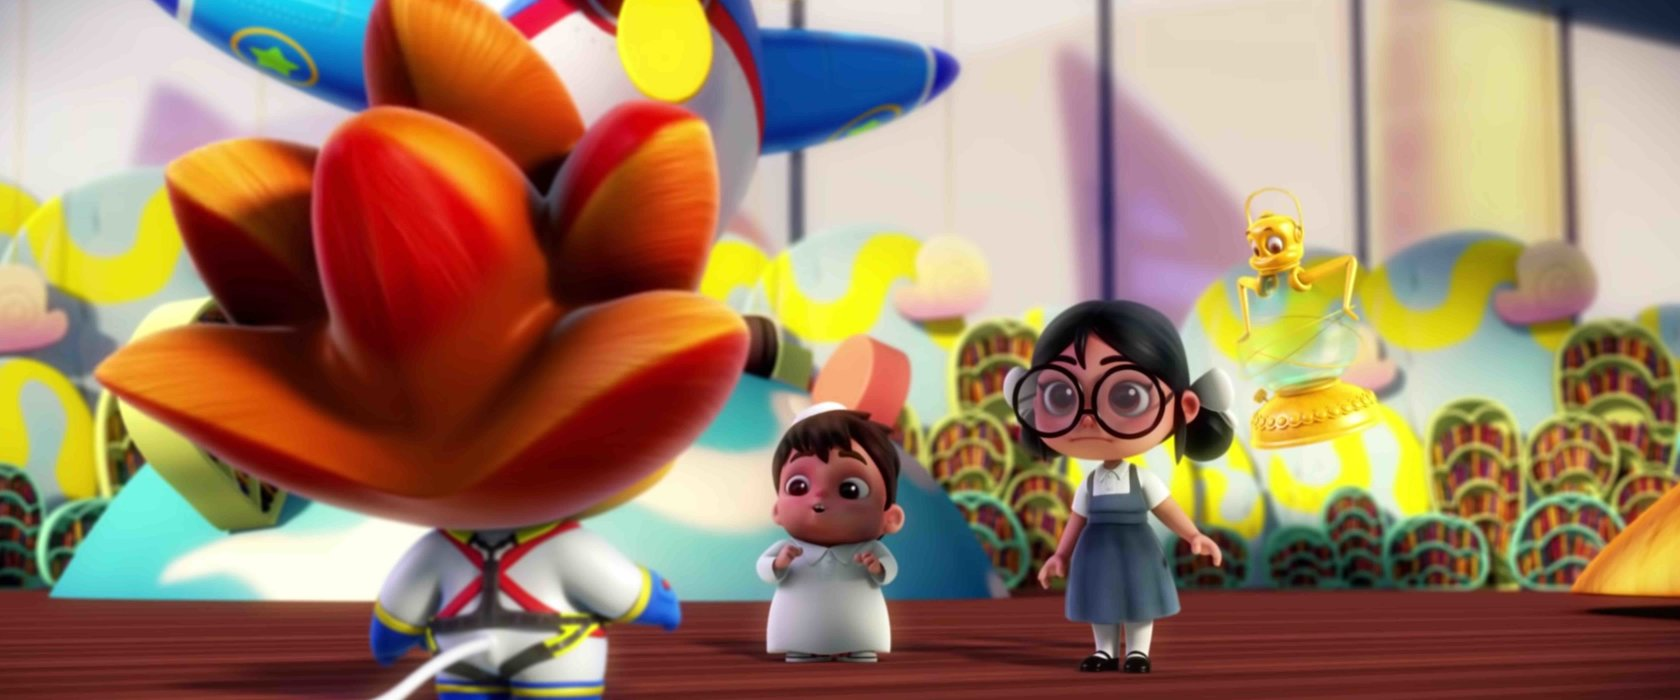 QF's animated TV series promotes learning in children